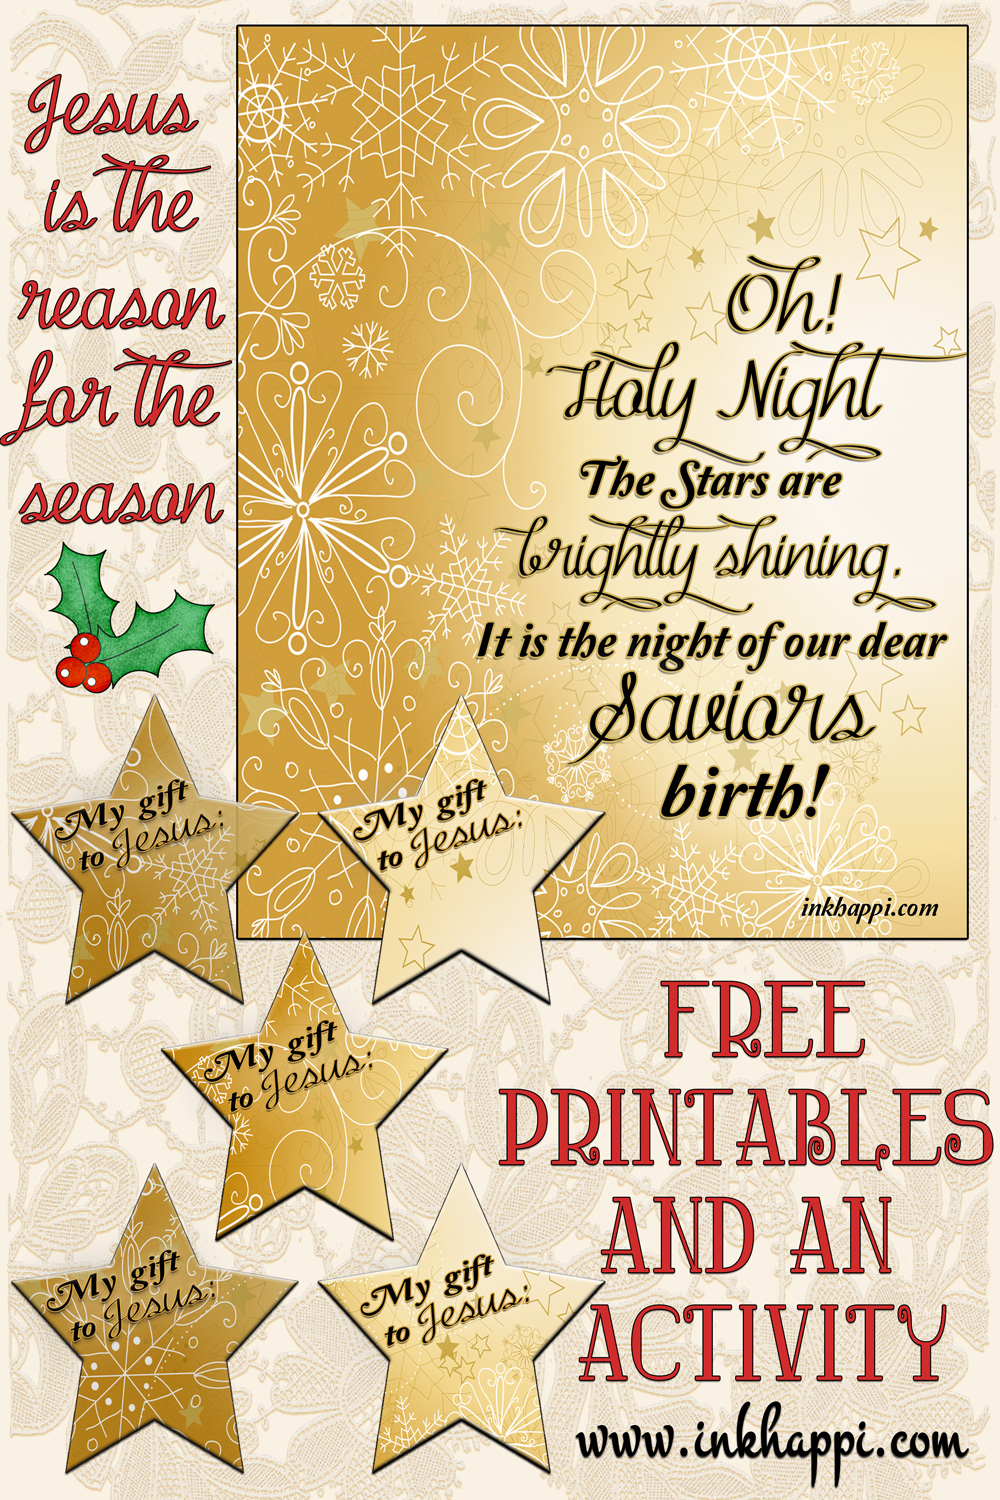 Oh Holy Night …Christmas activity, and a free printable!